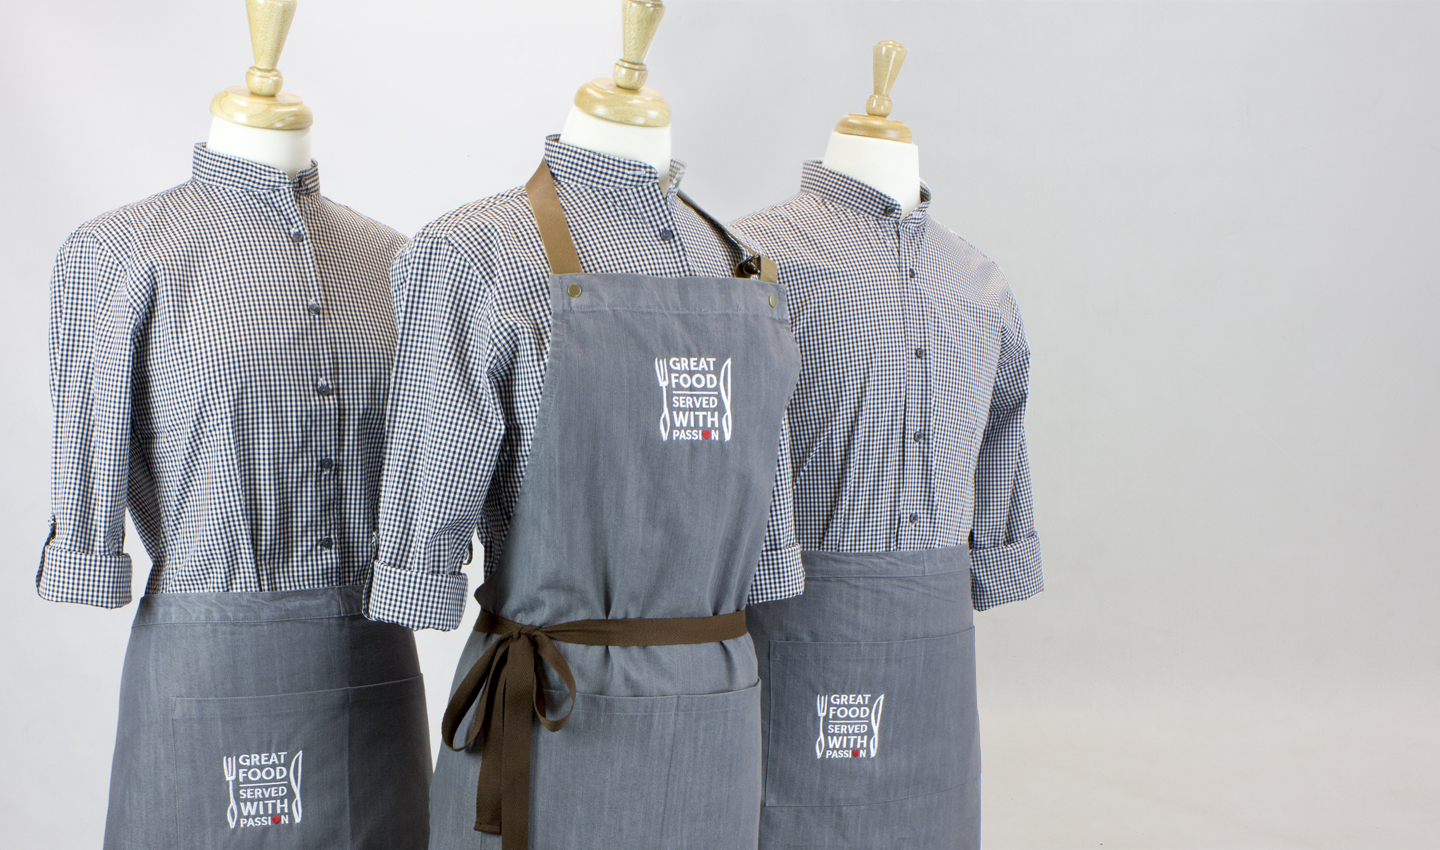 4a4a08b2fb4 Contract Caterers Staff Uniforms - Kylemark Workwear